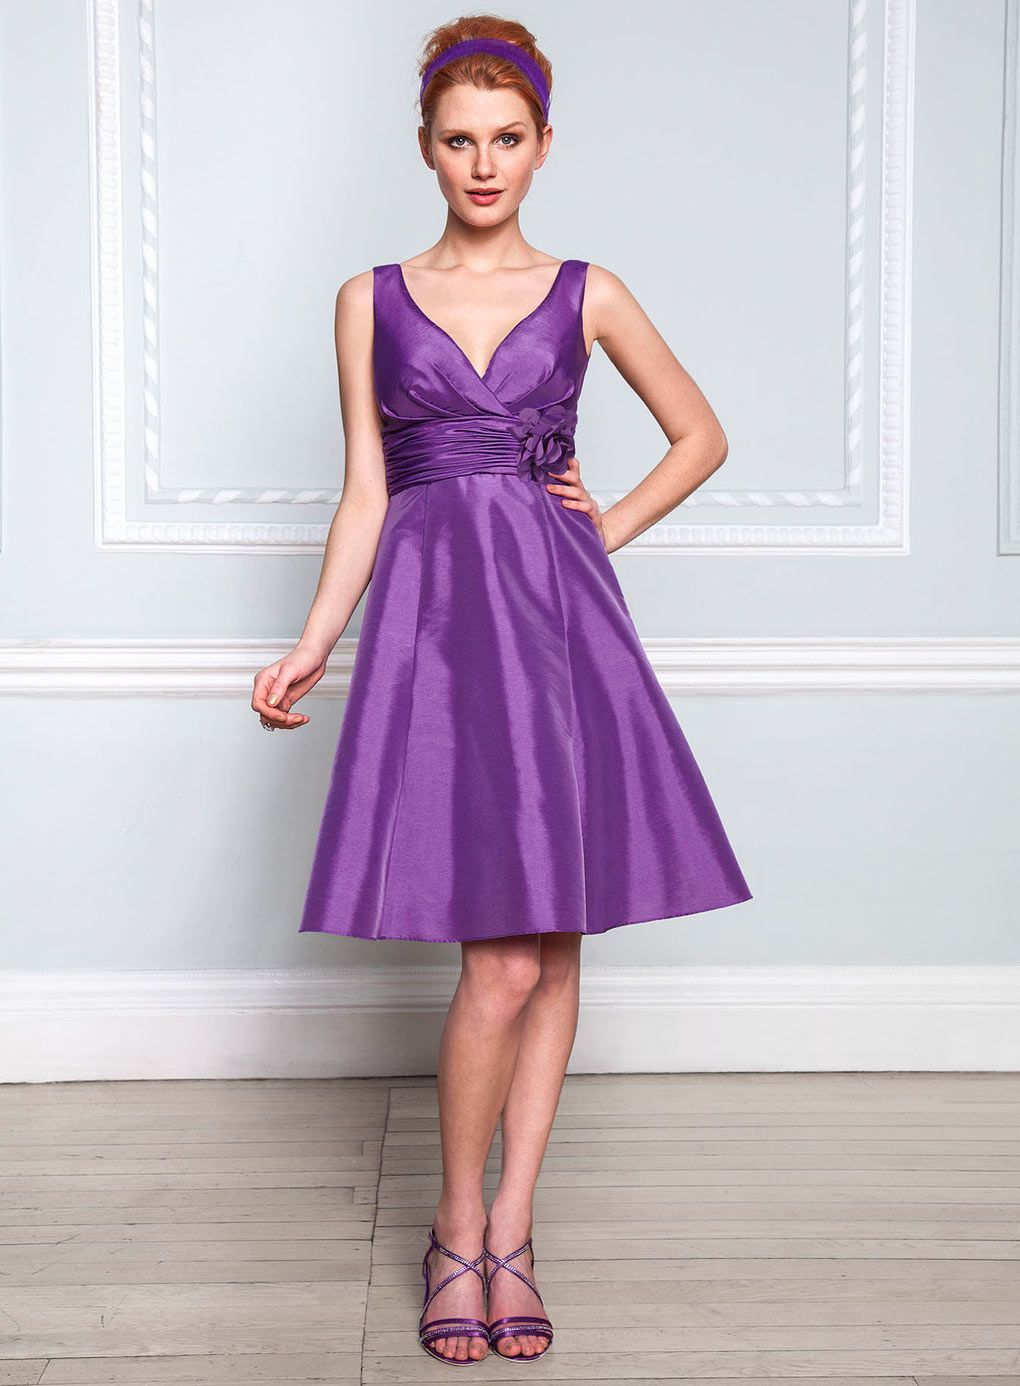 Cecilia Purple Taffeta Bridesmaid Dress - purple - bridesmaid ...